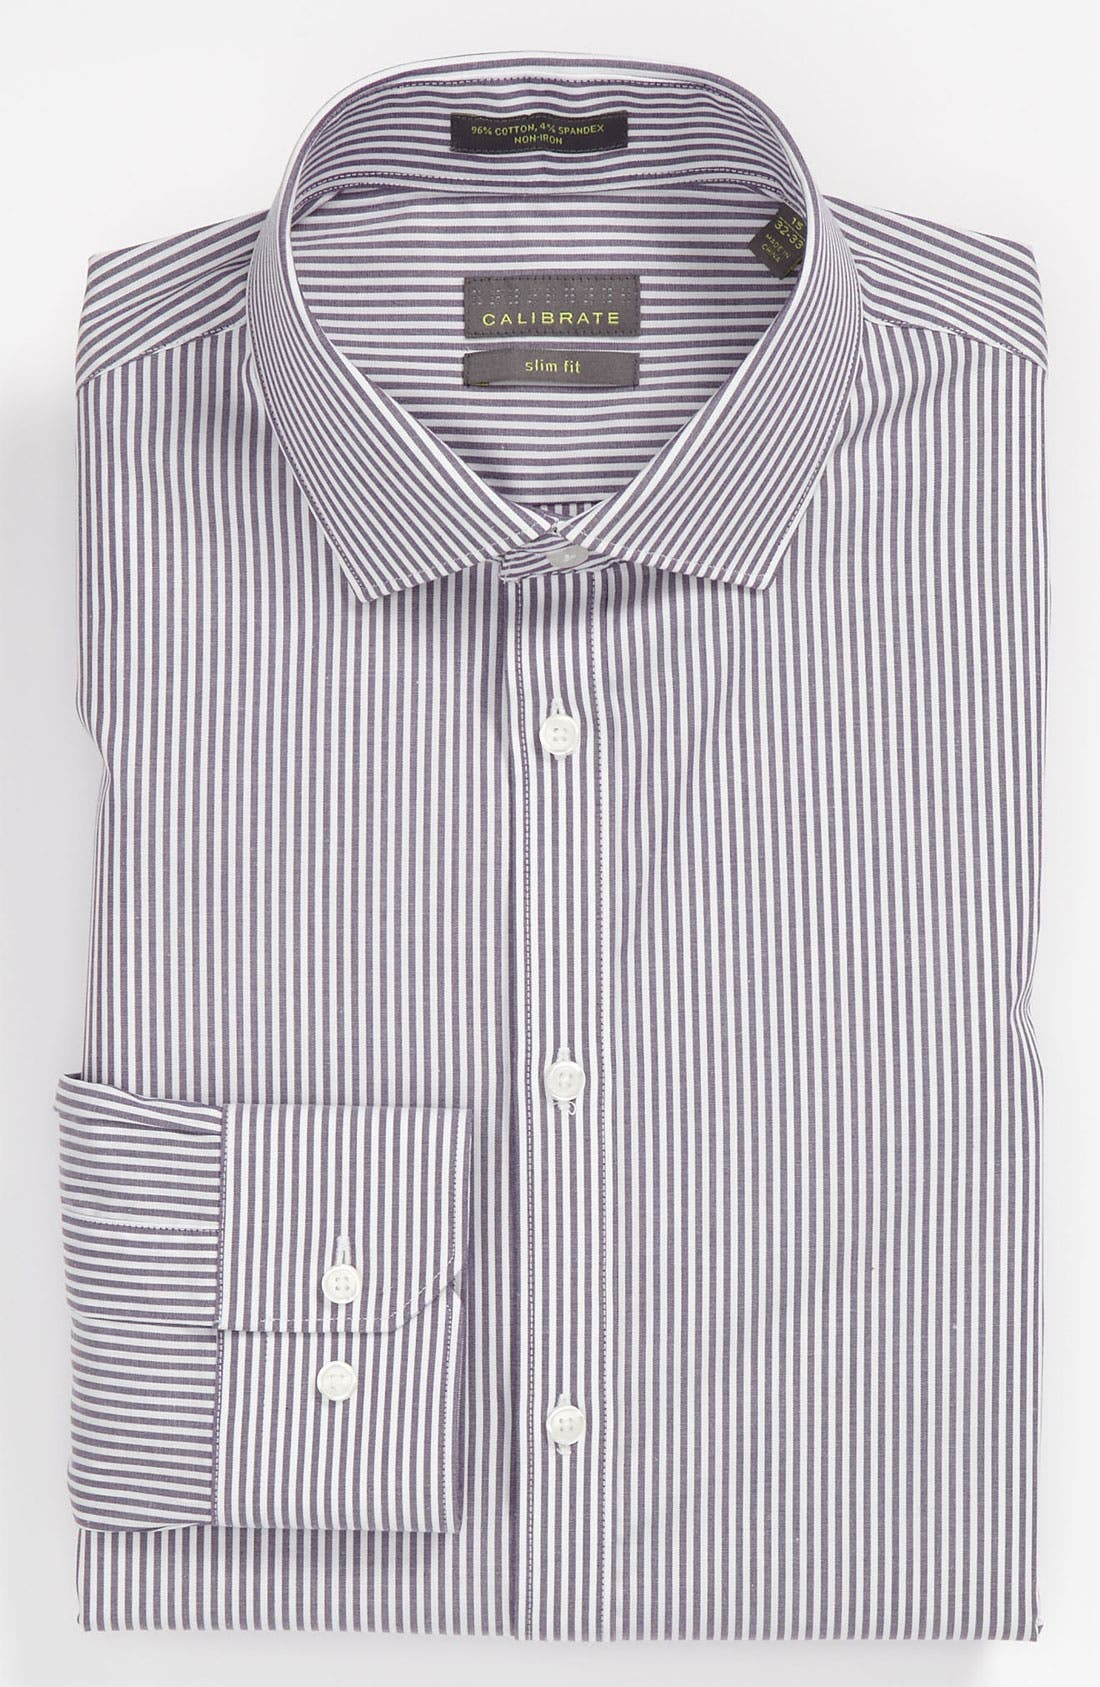 Main Image - Calibrate Slim Fit Non-Iron Dress Shirt